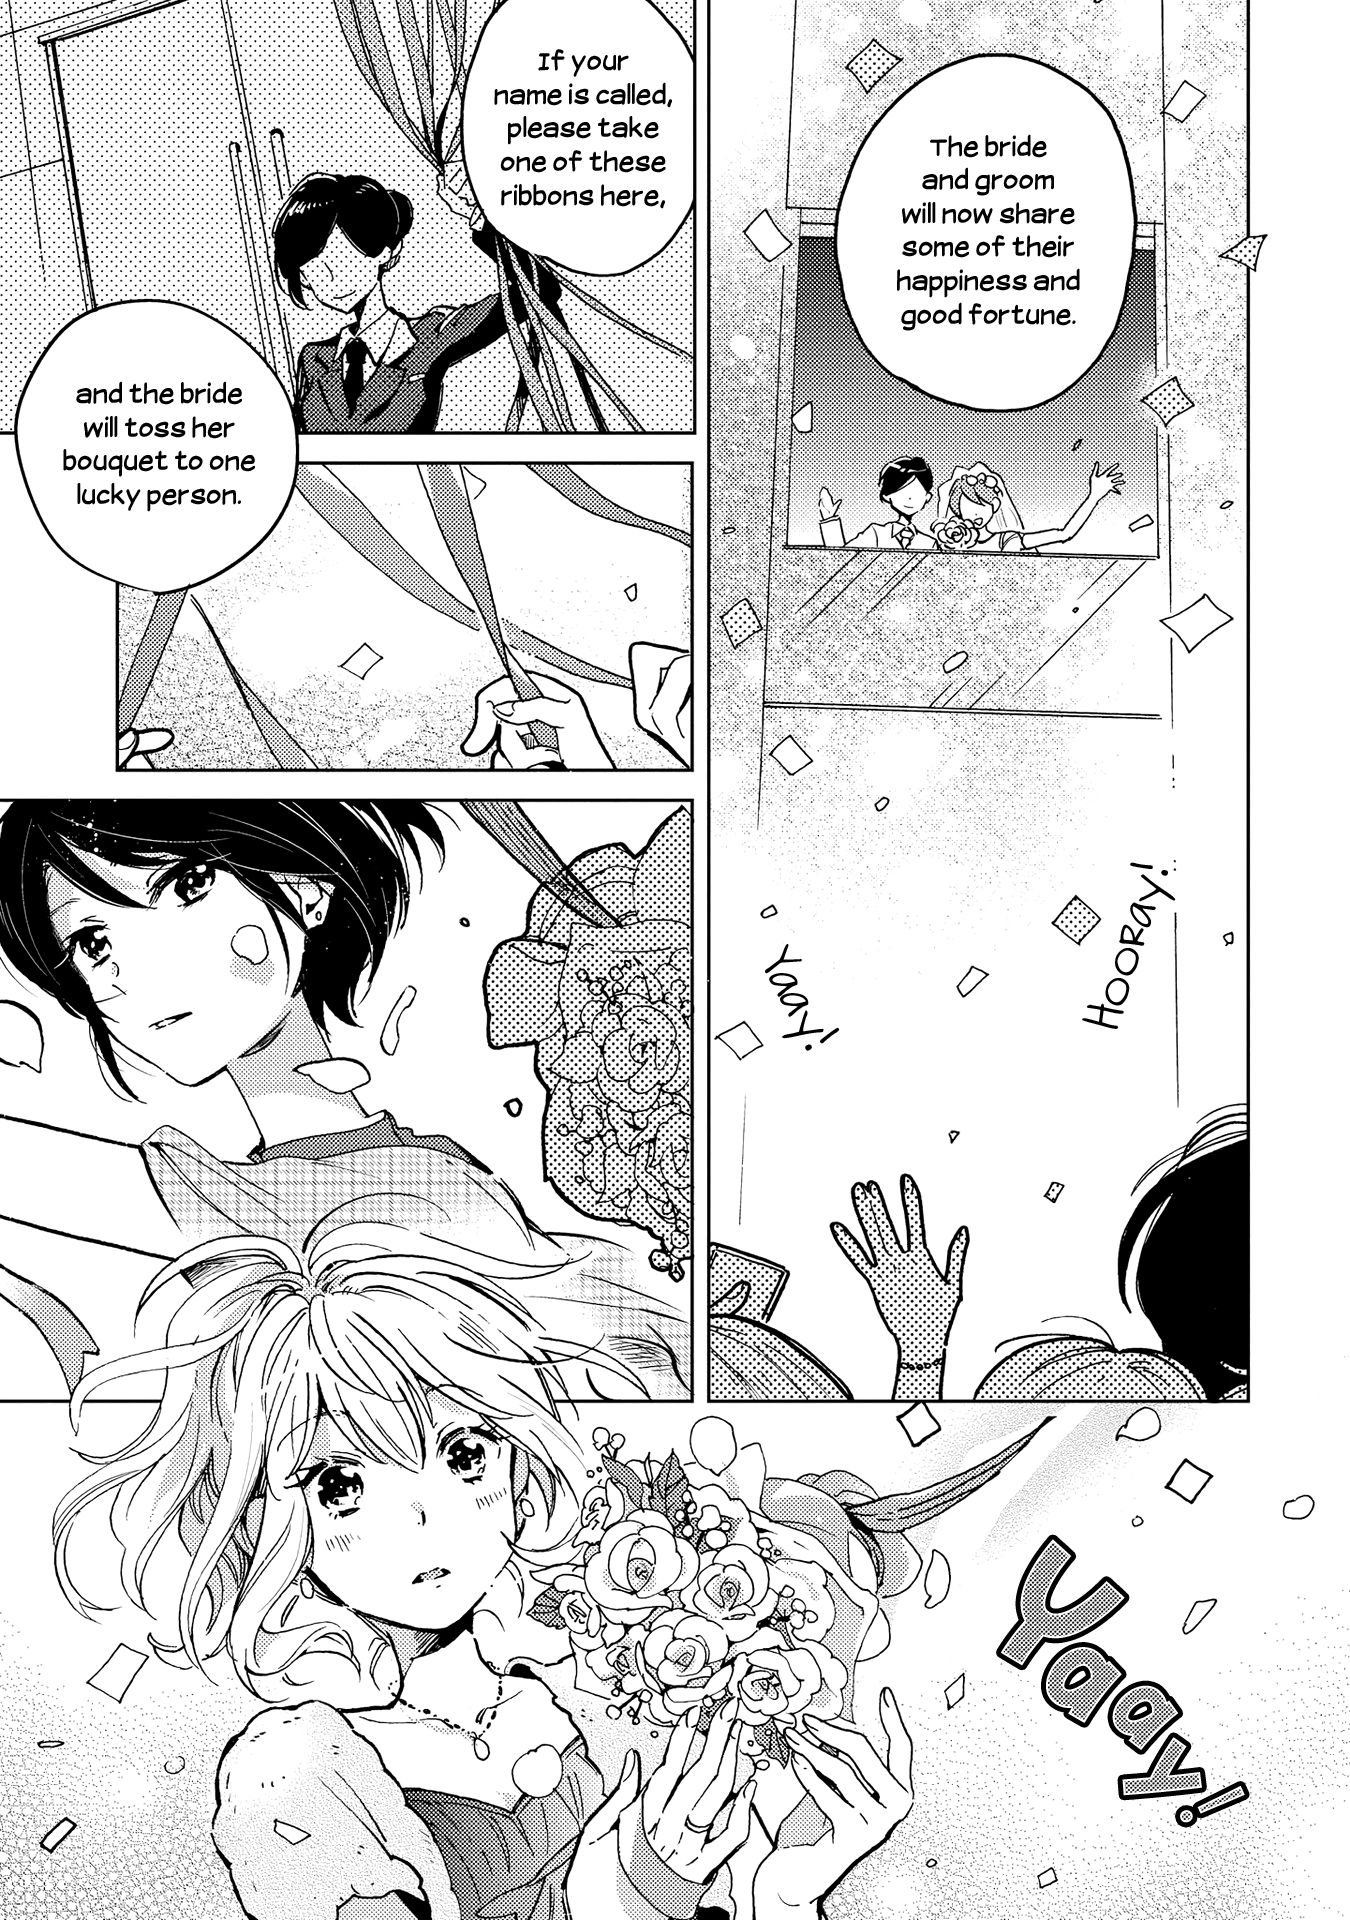 Take Off Glass Shoes - chapter 4 - #2